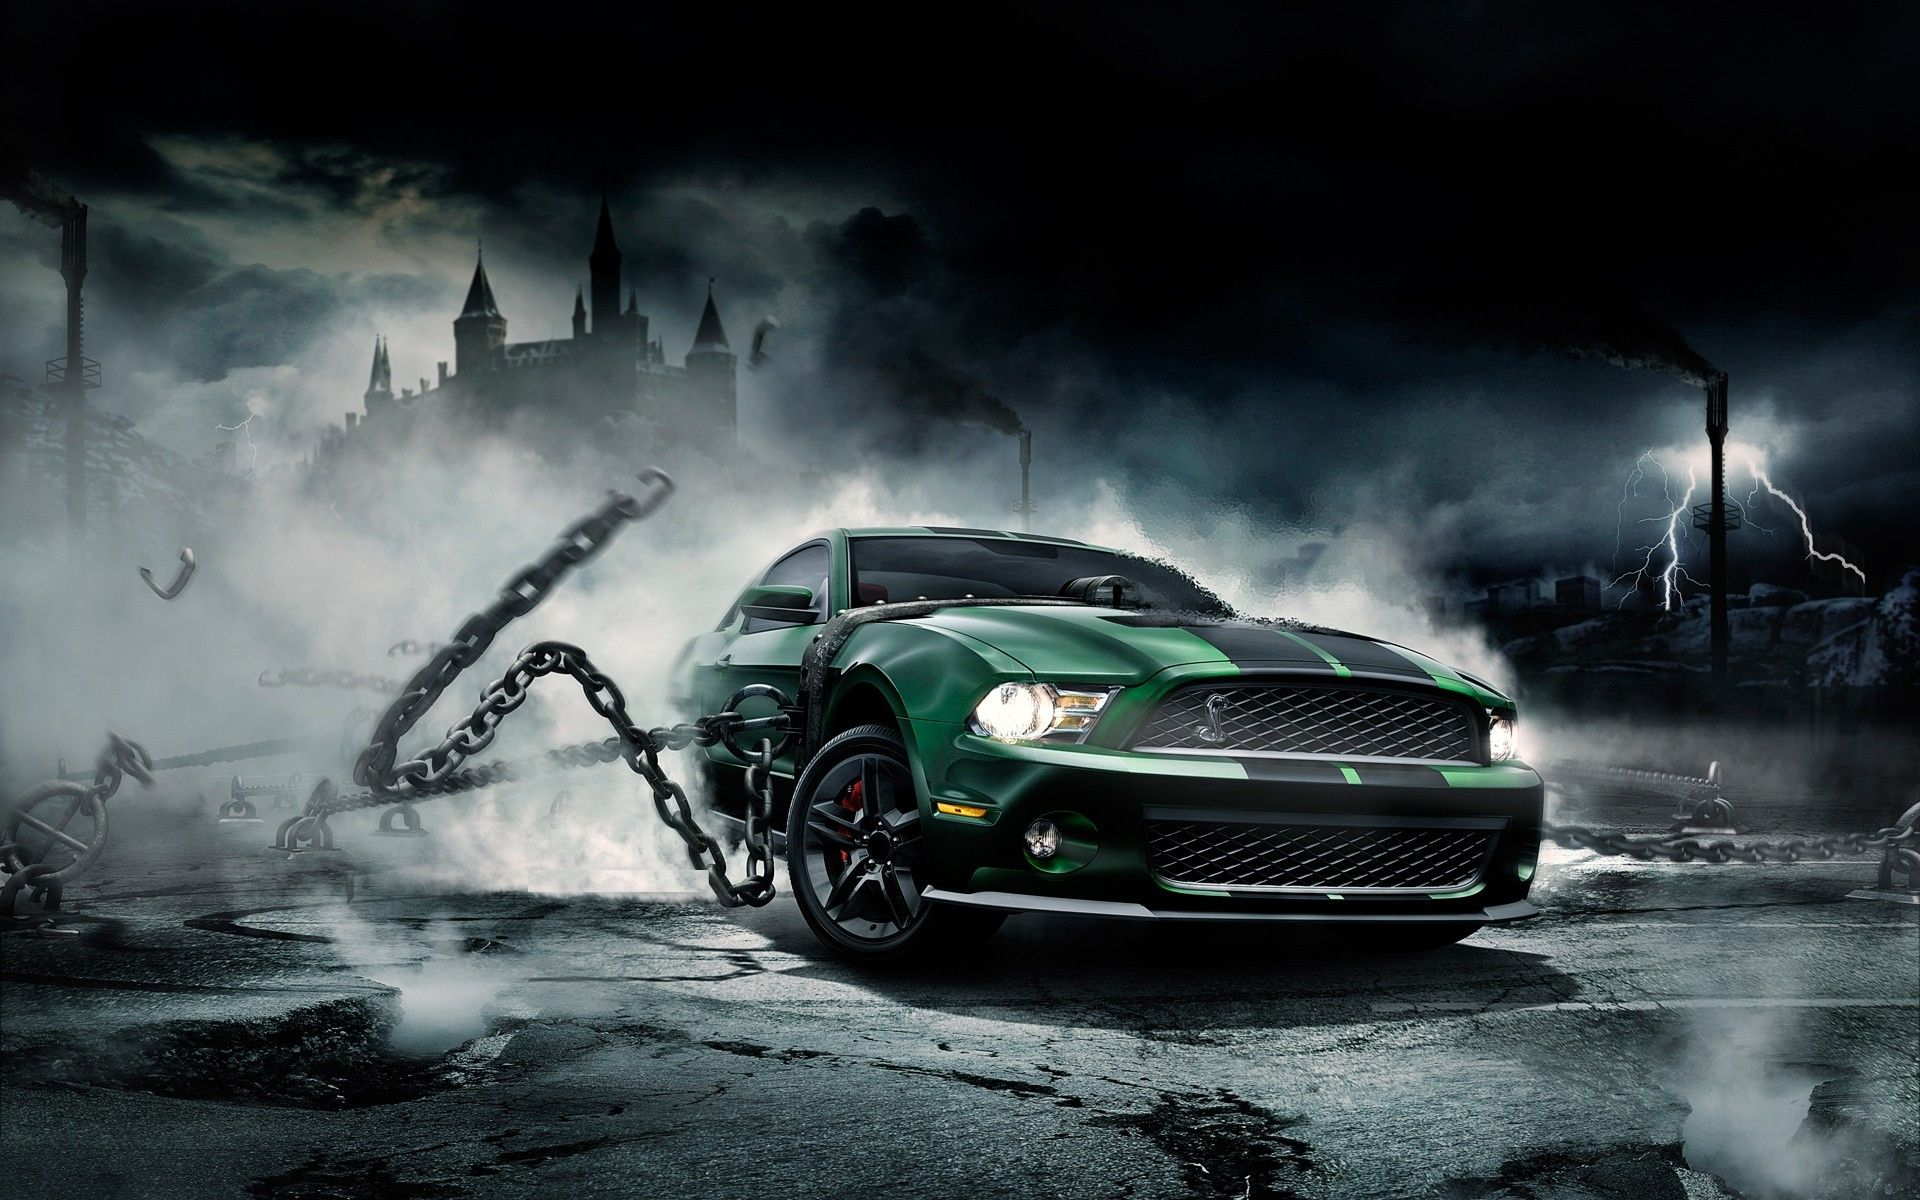 Hd Wallpaper For Pc 1920x1080 Free Download 2 Mustangs In Ford Mustang - Medium